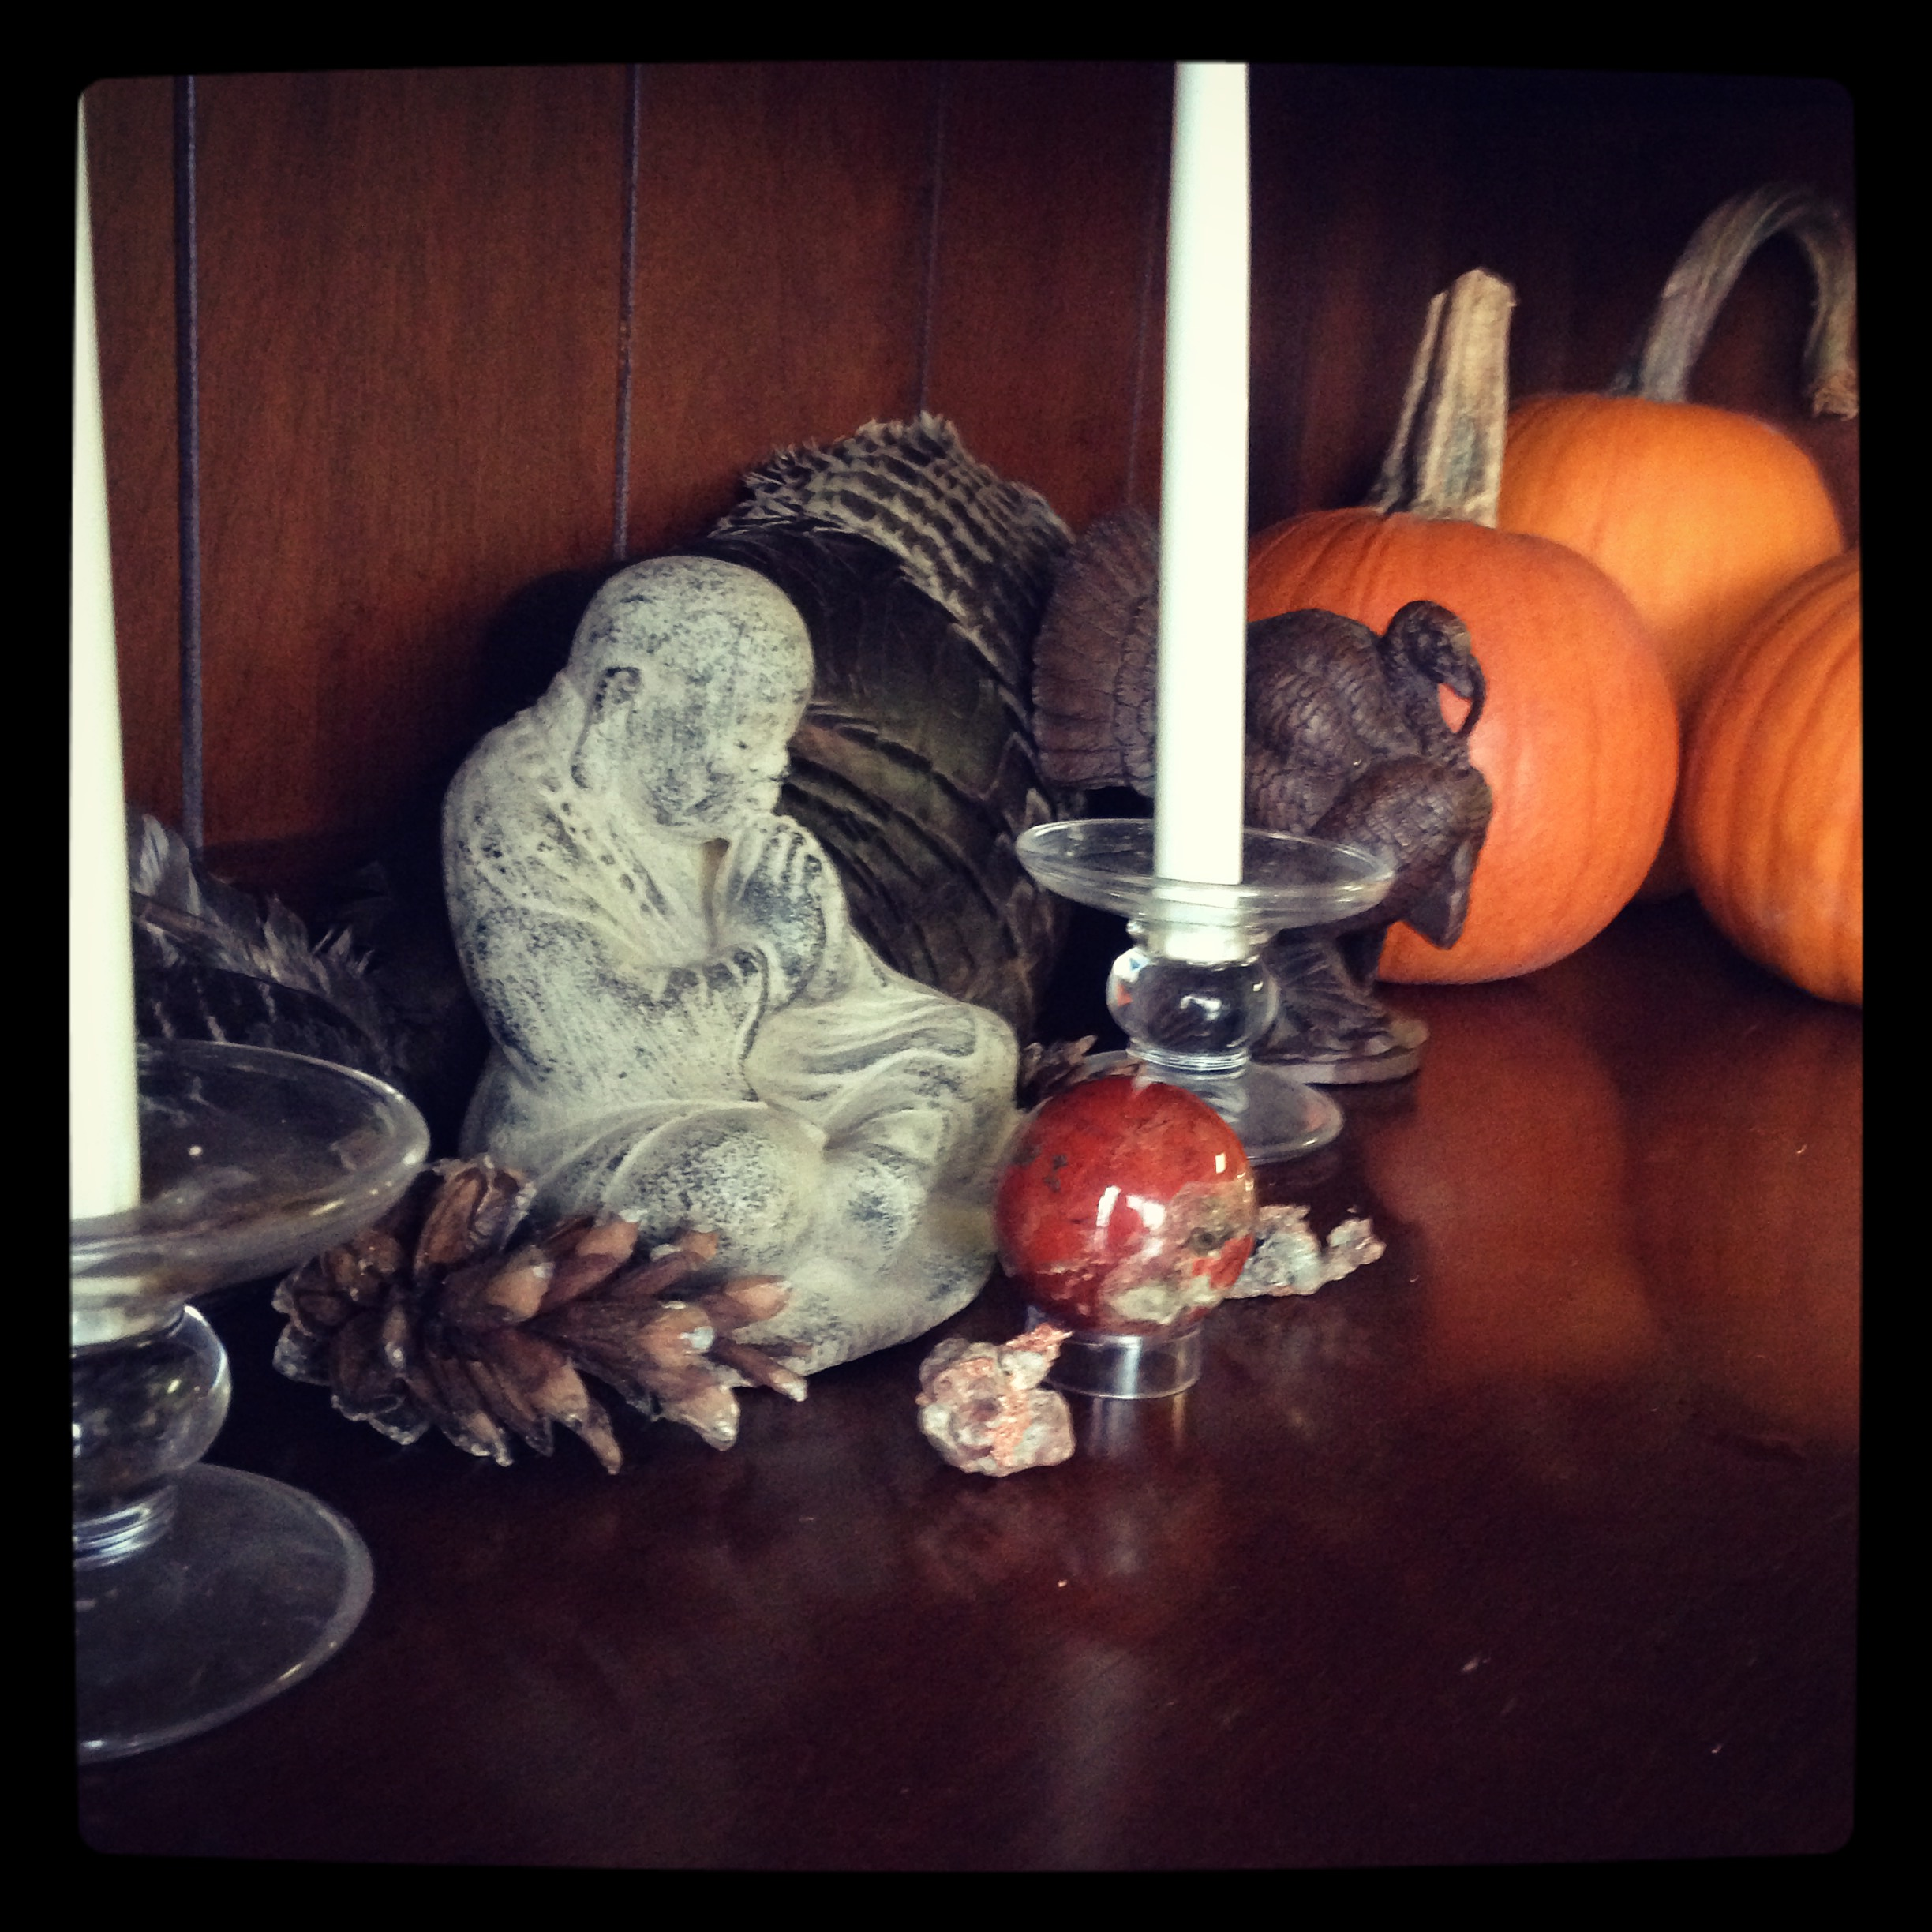 On my side board, I have two turkey wings, a Red Jasper Sphere, Copper and some pine cones and Pumpkins from our yard.